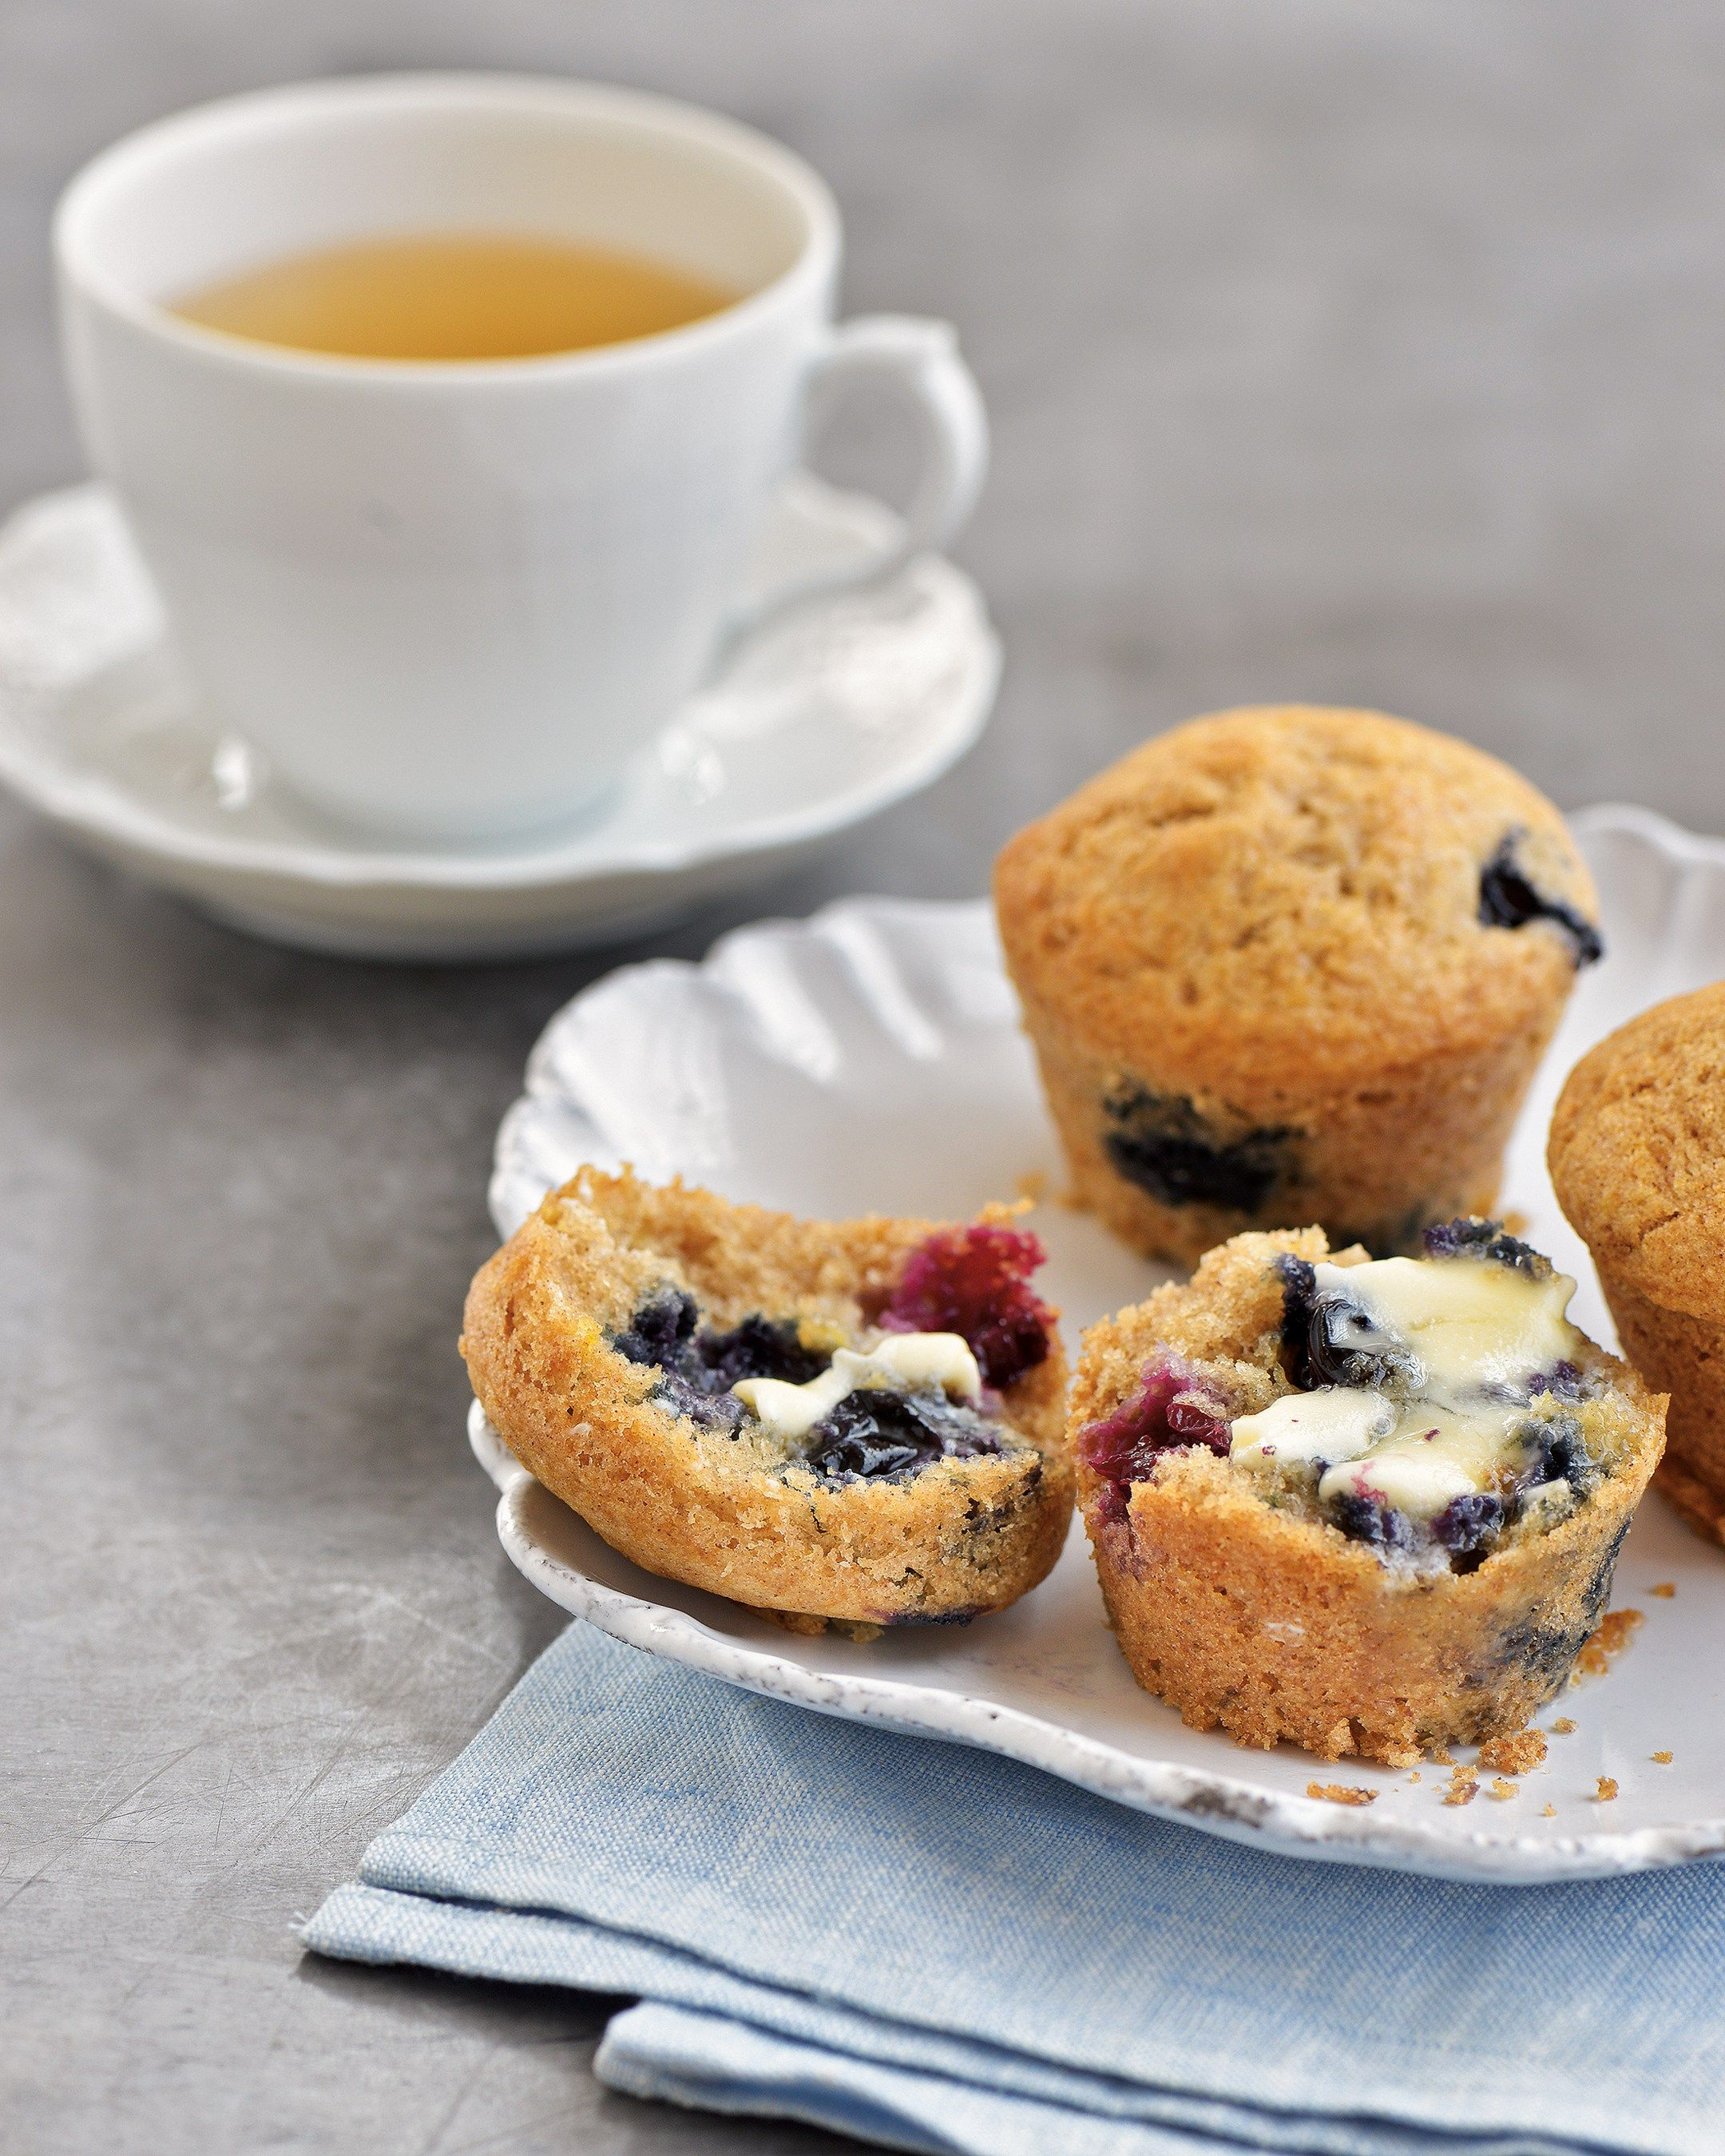 Nantucket Blueberry Muffins From Elin Hilderbrand book